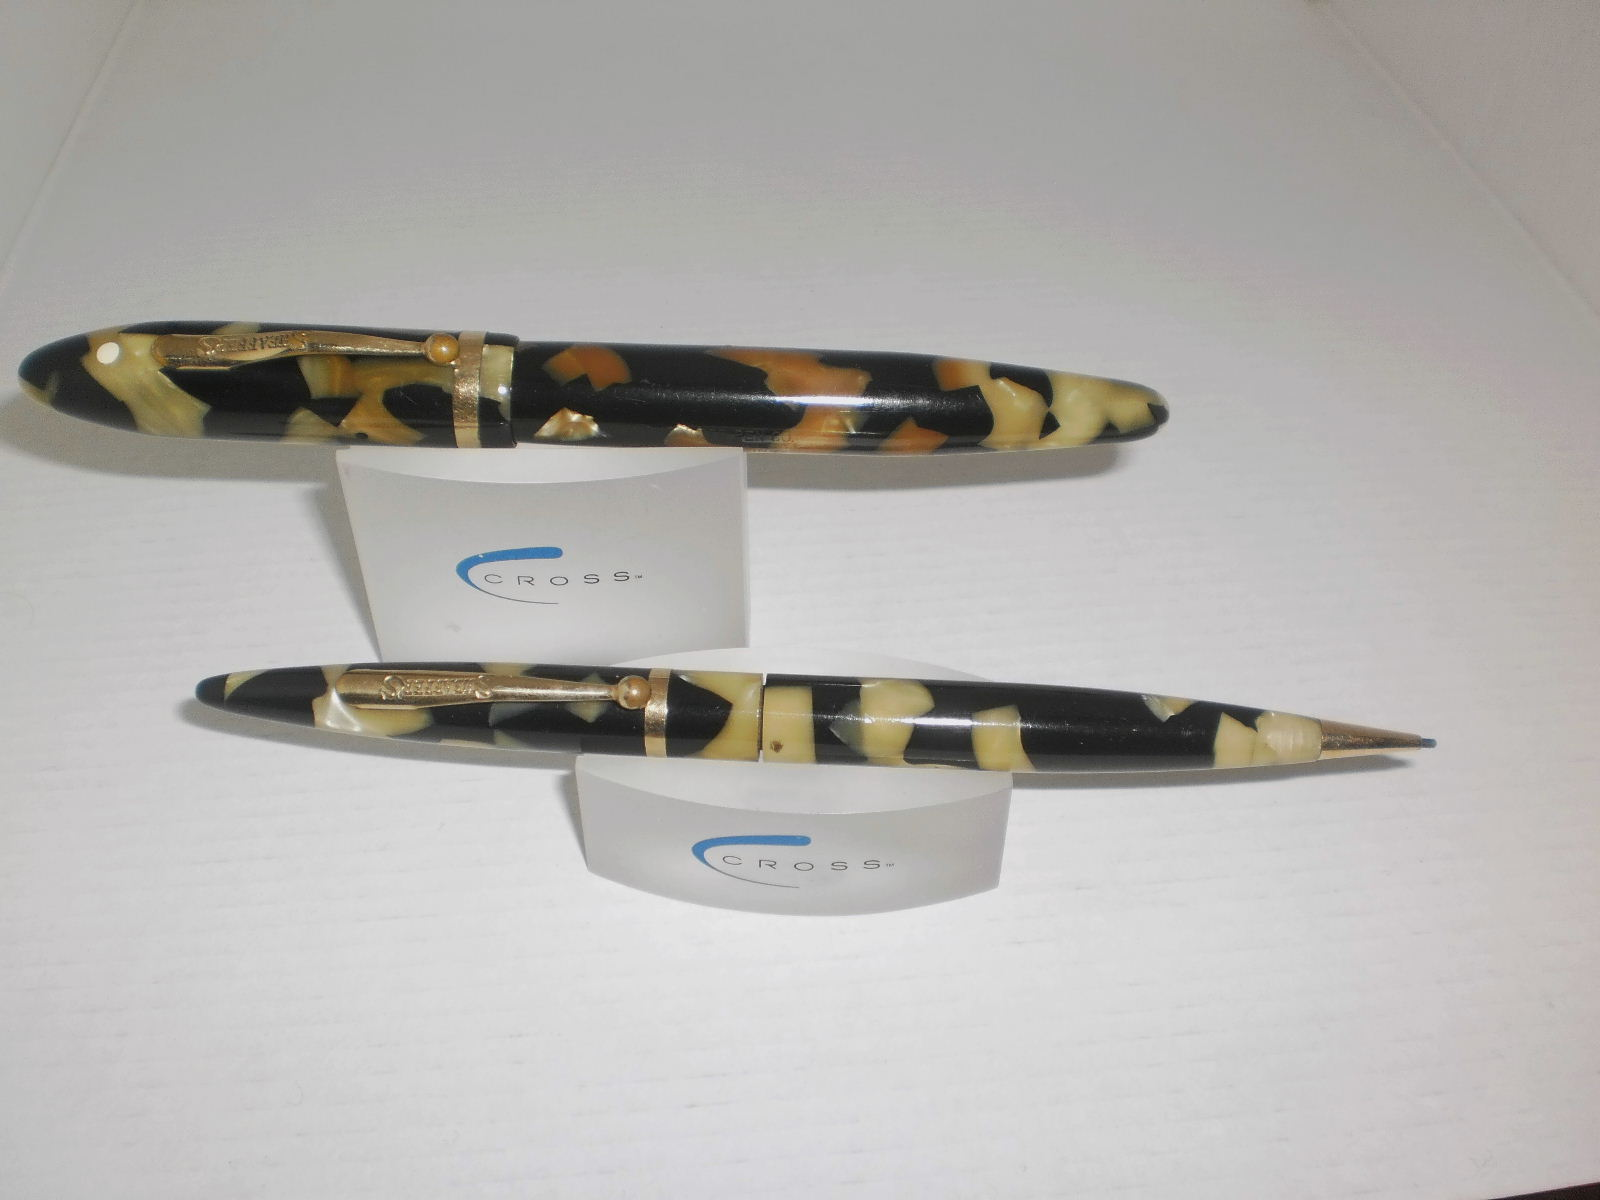 sheaffer set oversize0084.JPG